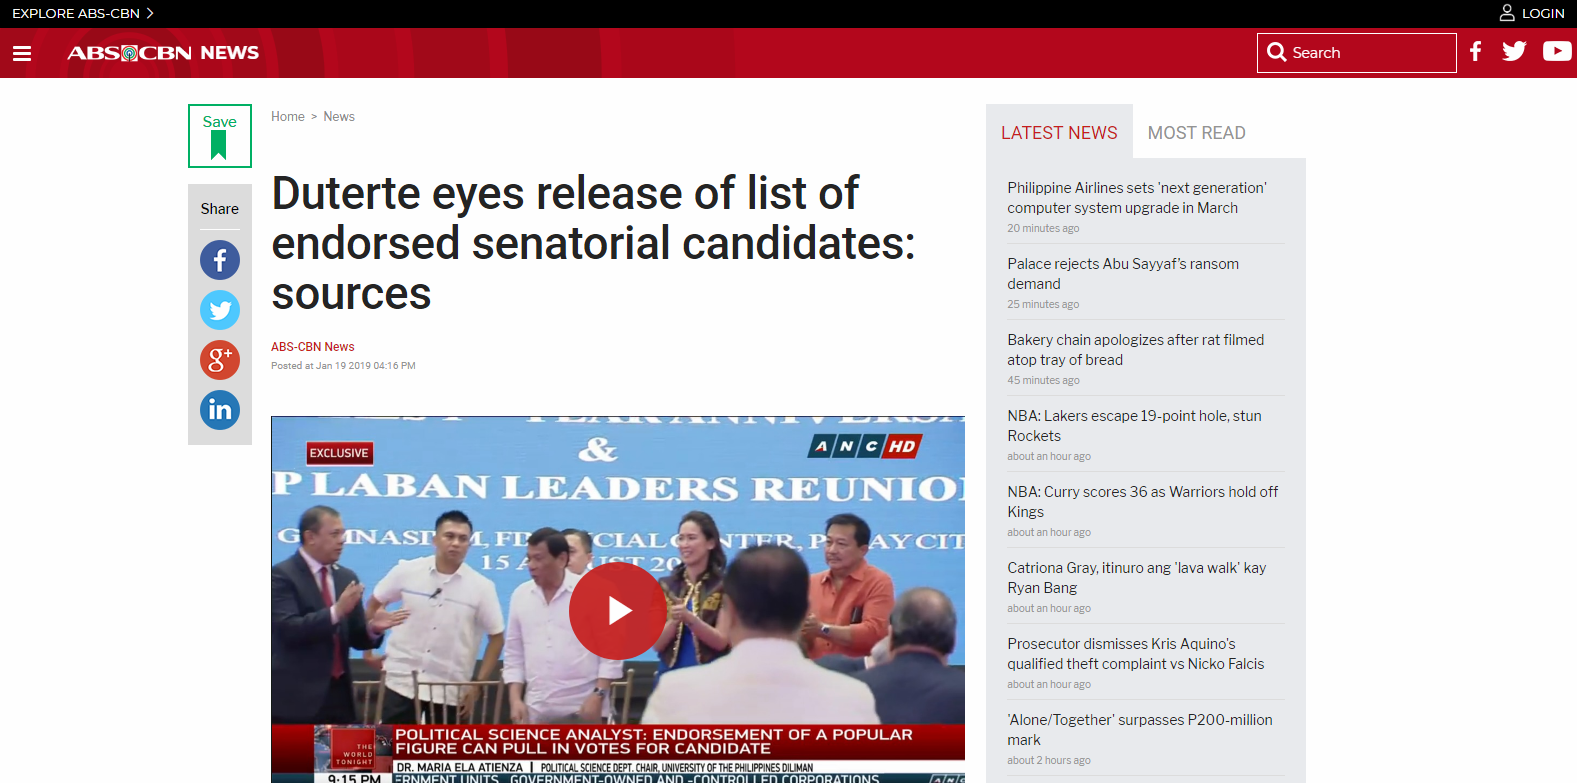 Duterte eyes release of list of endorsed senatorial candidates: sources